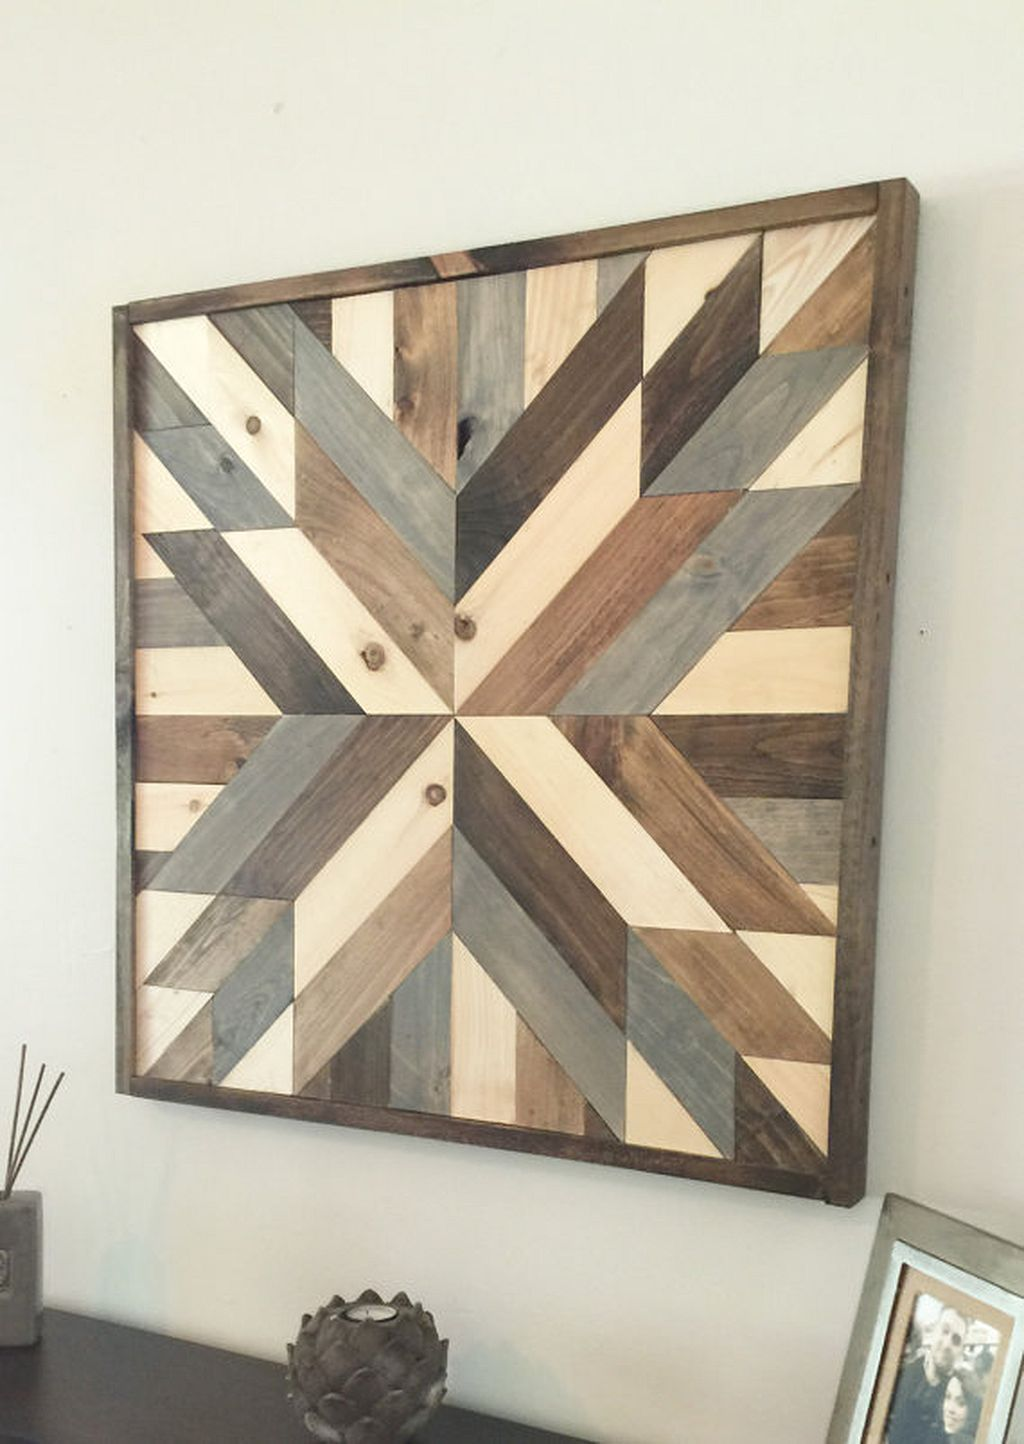 There are many rustic wall decor ideas that can make your home truly unique find and save ideas about rustic wall decor in this article